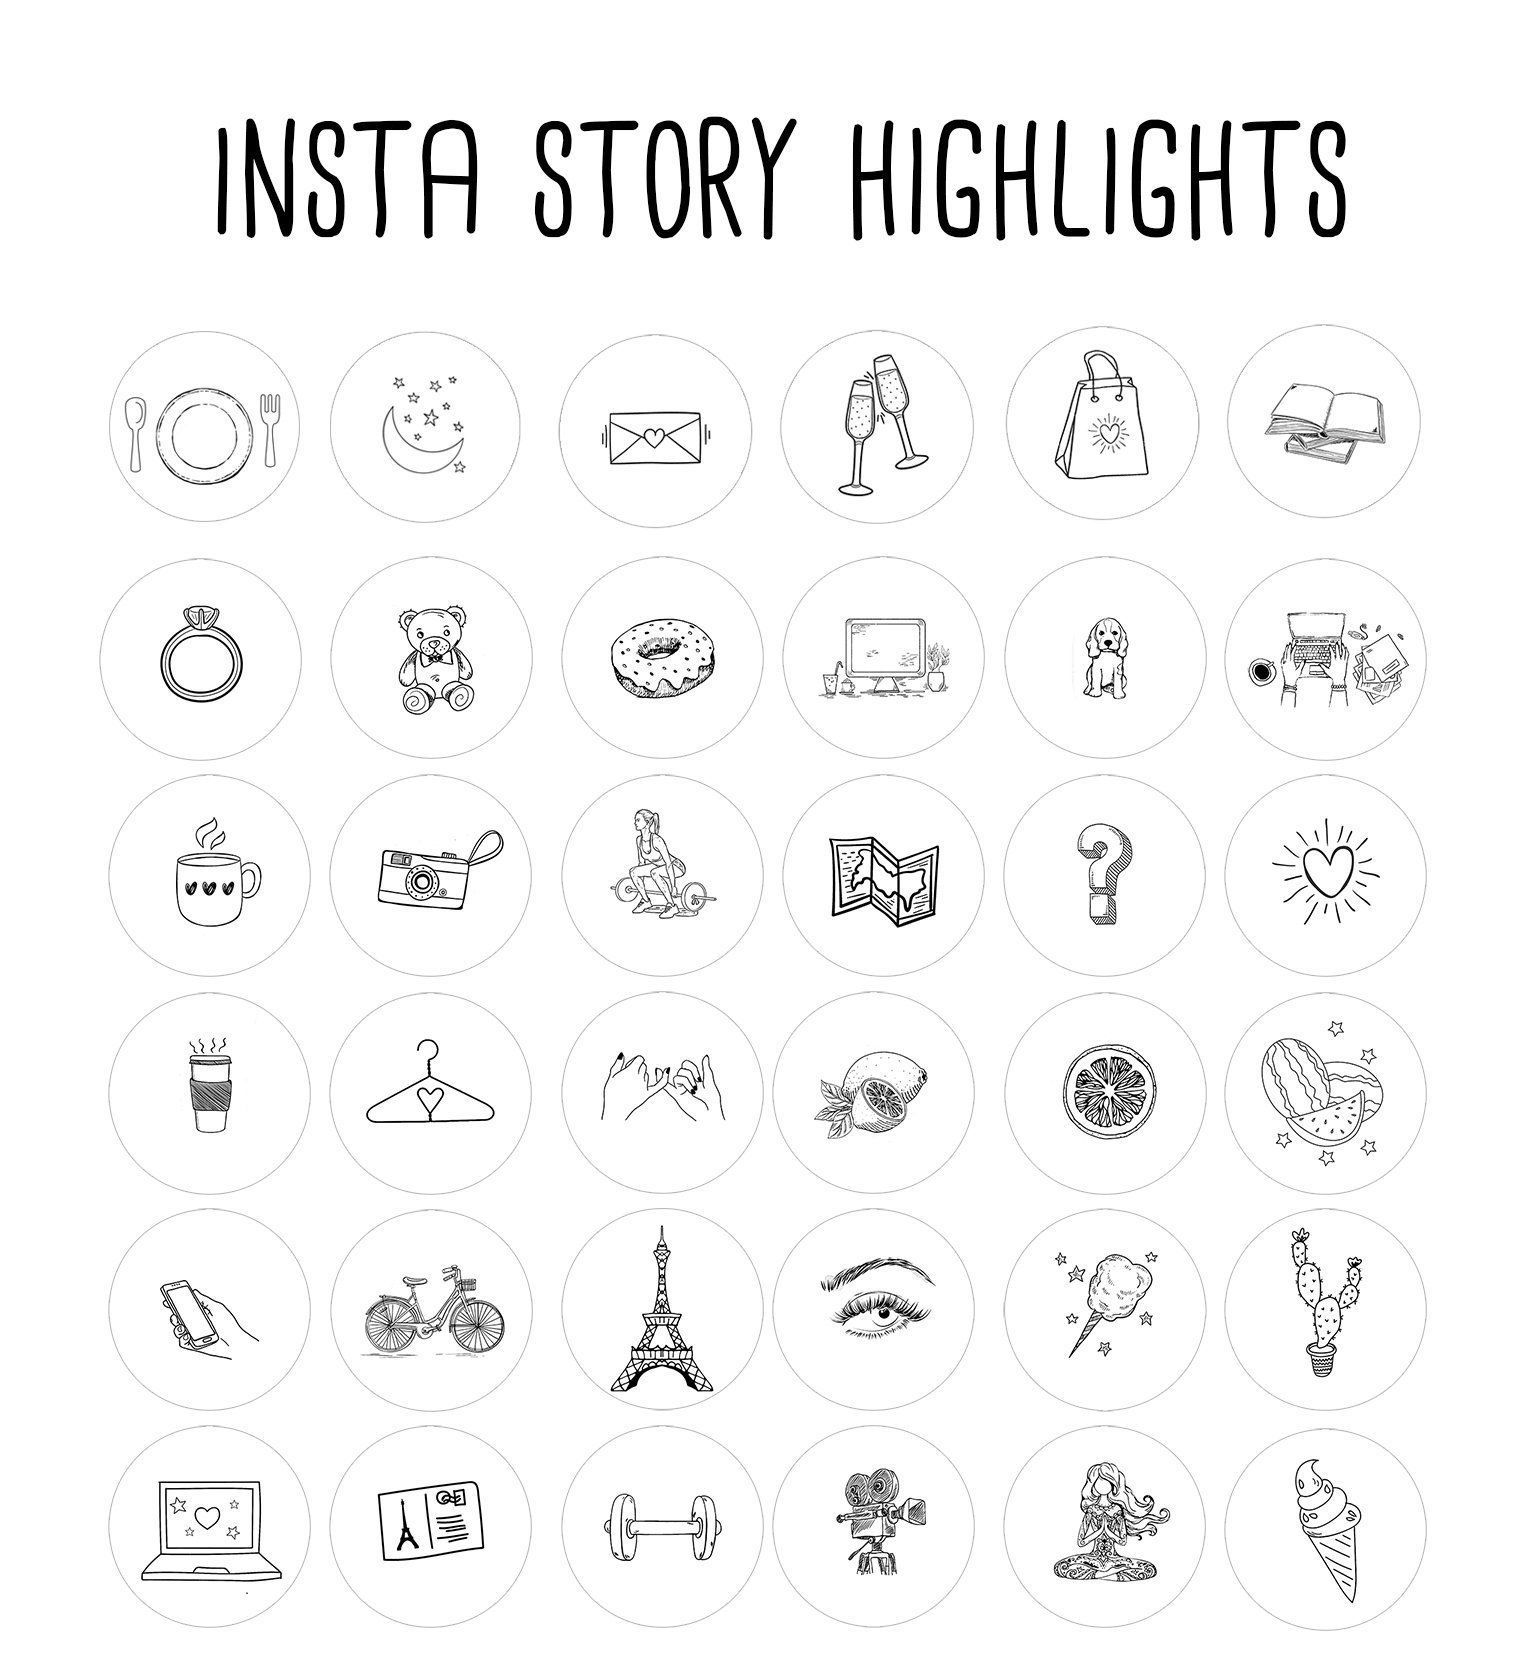 200+ Instagram Story Highlights Icons Covers    Black and White   Instagram Icons   Hand Drawn Template Graphic Bundle Instagram Highlights -  Instagram Story Highlights Icons Covers Black and White   Etsy  - #Black #bundle #Covers #Drawn #drugstoreMakeupCollection #Graphic #hand #highlights #Icons #Instagram #luxuryMakeupCollection #MakeupCollectionhowtostarta #MakeupCollectiontumblr #MakeupCollectionvideos #Story #Template #WHITE